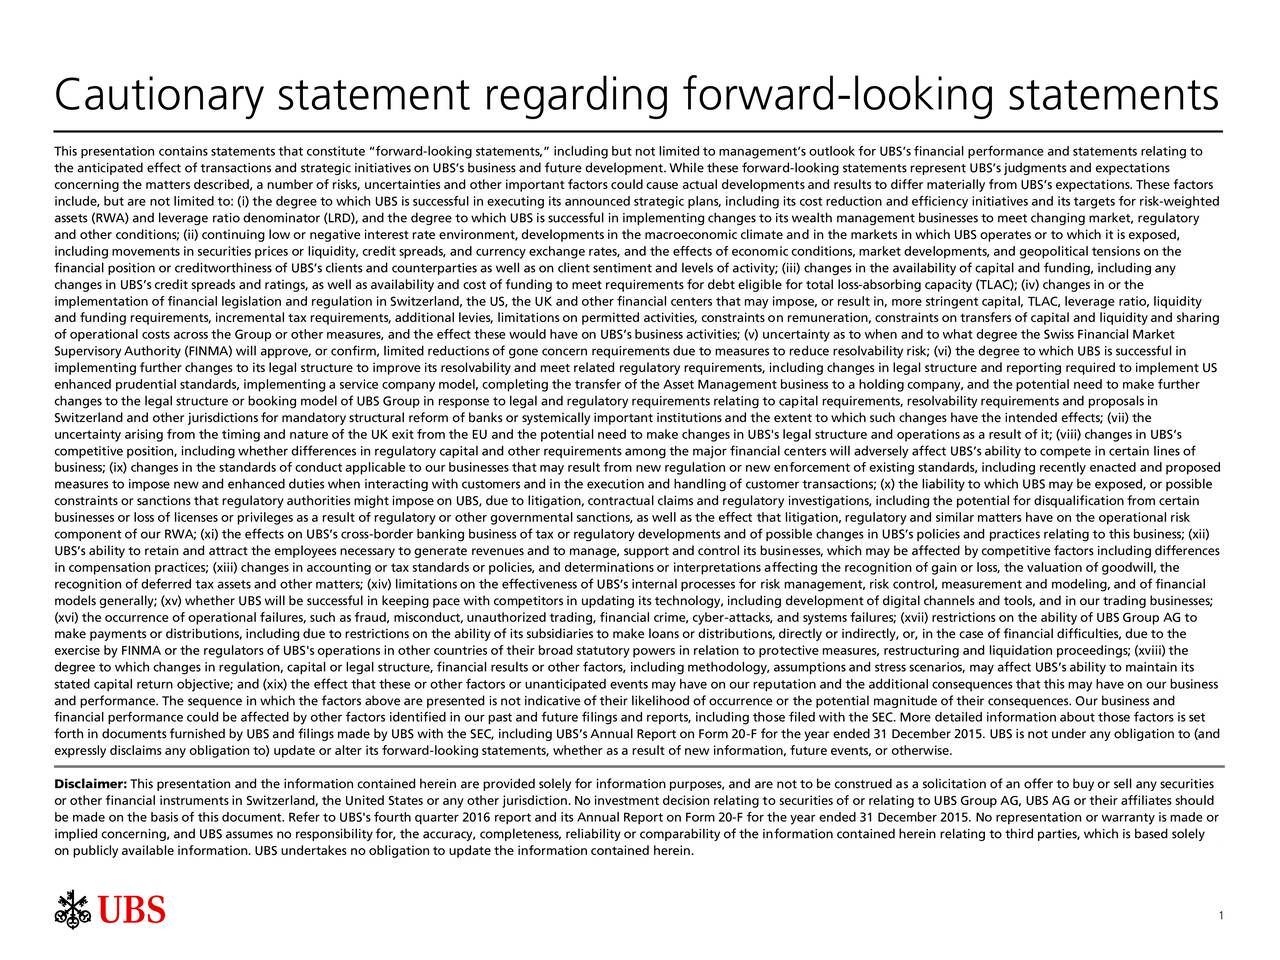 This presentation contains statements that constitute forward-looking statements, including but not limited to managements outlook for UBSs financial performance and statements relating to the anticipated effect of transactions and strategic initiatives on UBSs business and future development. While these forward-looking statements represent UBSs judgments and expectations concerning the matters described, a number of risks, uncertainties and other important factors could cause actual developments and results to differ materially from UBSs expectations. These factors include, but are not limited to: (i) the degree to which UBS is successful in executing its announced strategic plans, including its cost reduction and efficiency initiatives and its targets for risk-weighted assets (RWA) and leverage ratio denominator (LRD), and the degree to which UBS is successful in implementing changes to its wealth management businesses to meet changing market, regulatory and other conditions; (ii) continuing low or negative interest rate environment, developments in the macroeconomic climate and in the markets in which UBS operates or to which it is exposed, including movements in securities prices or liquidity, credit spreads, and currency exchange rates, and the effects of economic conditions, market developments, and geopolitical tensions on the financial position or creditworthiness of UBSs clients and counterparties as well as on client sentiment and levels of activity; (iii) changes in the availability of capital and funding, including any changes in UBSs credit spreads and ratings, as well as availability and cost of funding to meet requirements for debt eligible for total loss-absorbing capacity (TLAC); (iv) changes in or the implementation of financial legislation and regulation in Switzerland, the US, the UK and other financial centers that may impose, or result in, more stringent capital, TLAC, leverage ratio, liquidity and funding requirements, incremental tax require